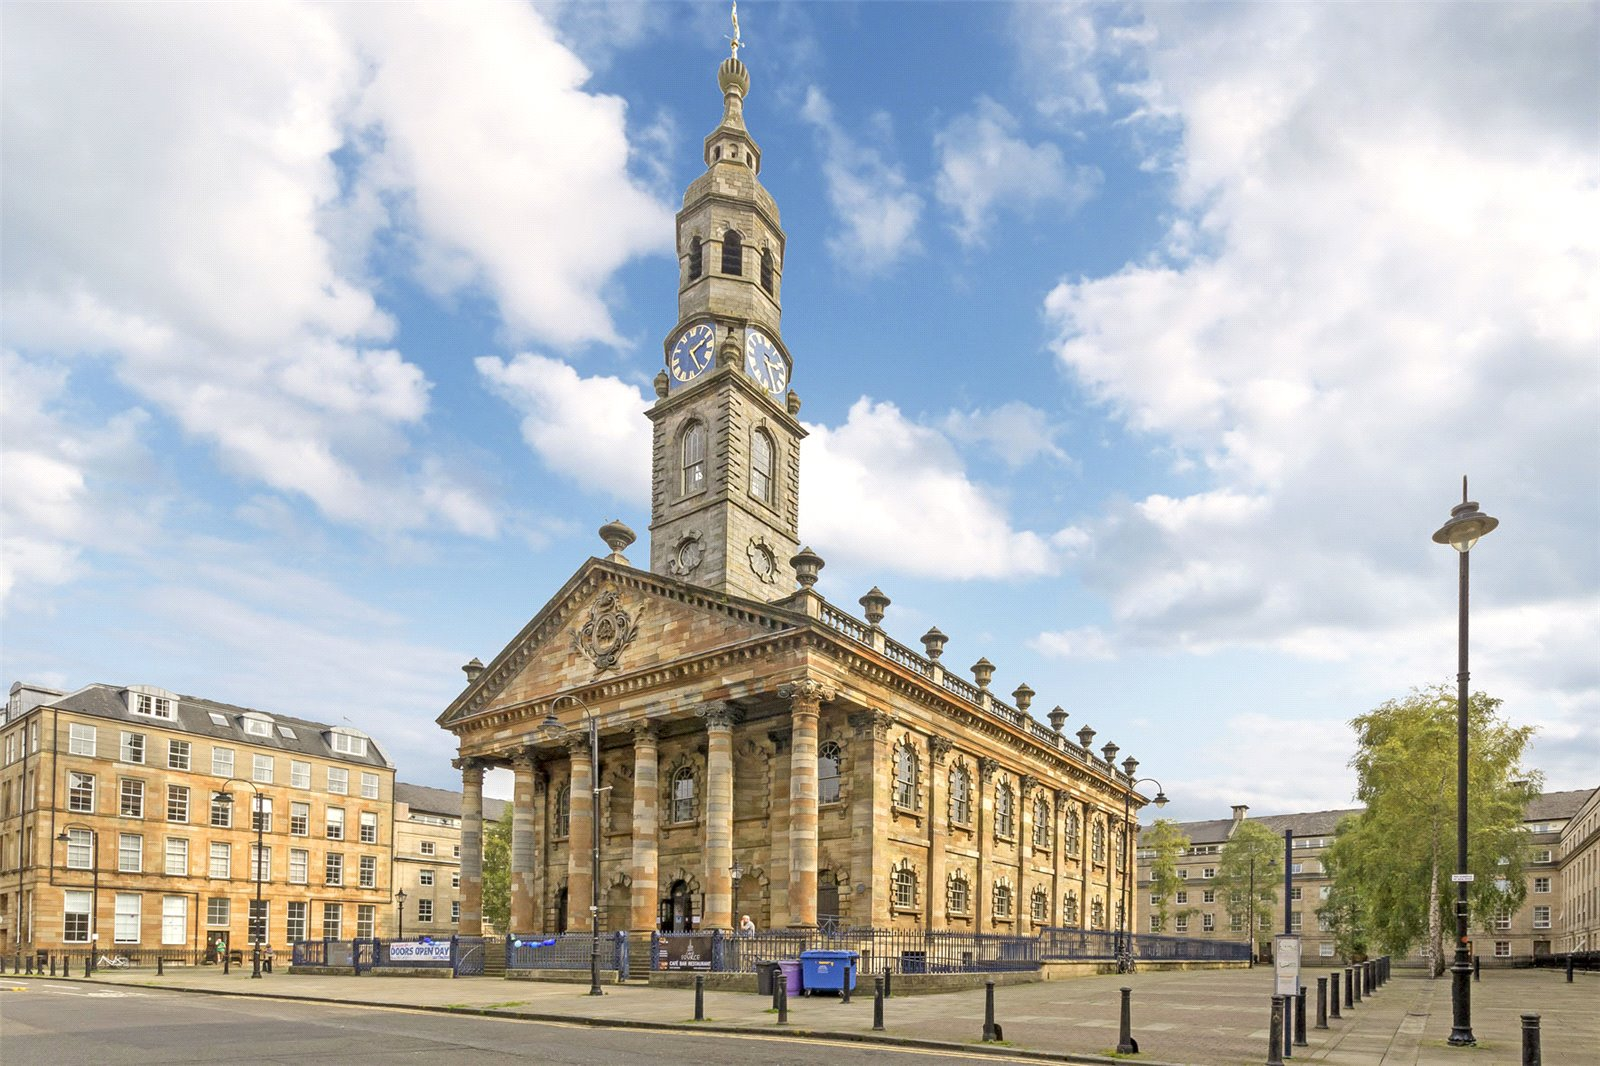 Glasgow Property of the Week: 30 St Andrew's Square